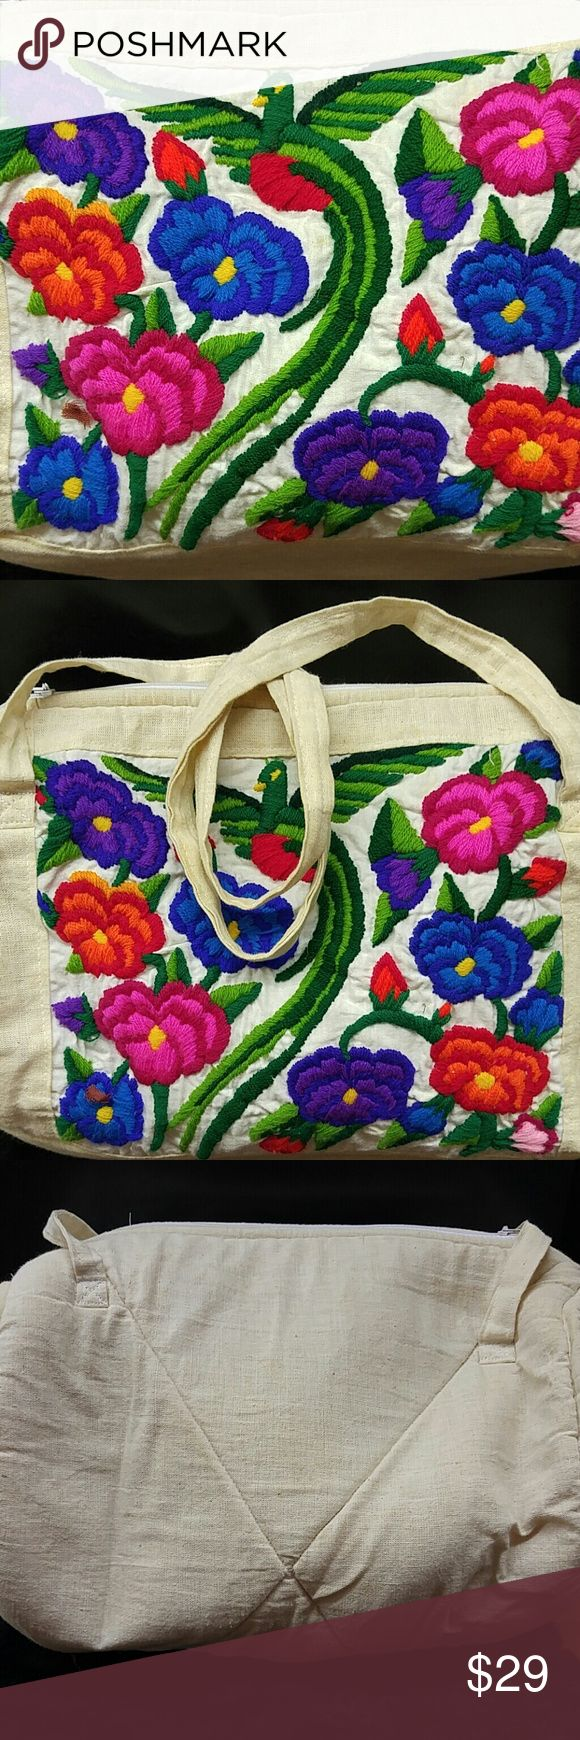 Vintage Crewel Medium Tote Duffle Bag 🌼Vintage muslin fabric duffle 🌼Vibrant wool stitch work  🌼Flowers and Bird of Paradise 🌼A few tiny blemishes to the fabric, hard to say if it's age or an inherent characteristic of the muslin 🌼Sturdy straps and working metal Zipper🌼 Bundles and offers always welcome! Bags Totes